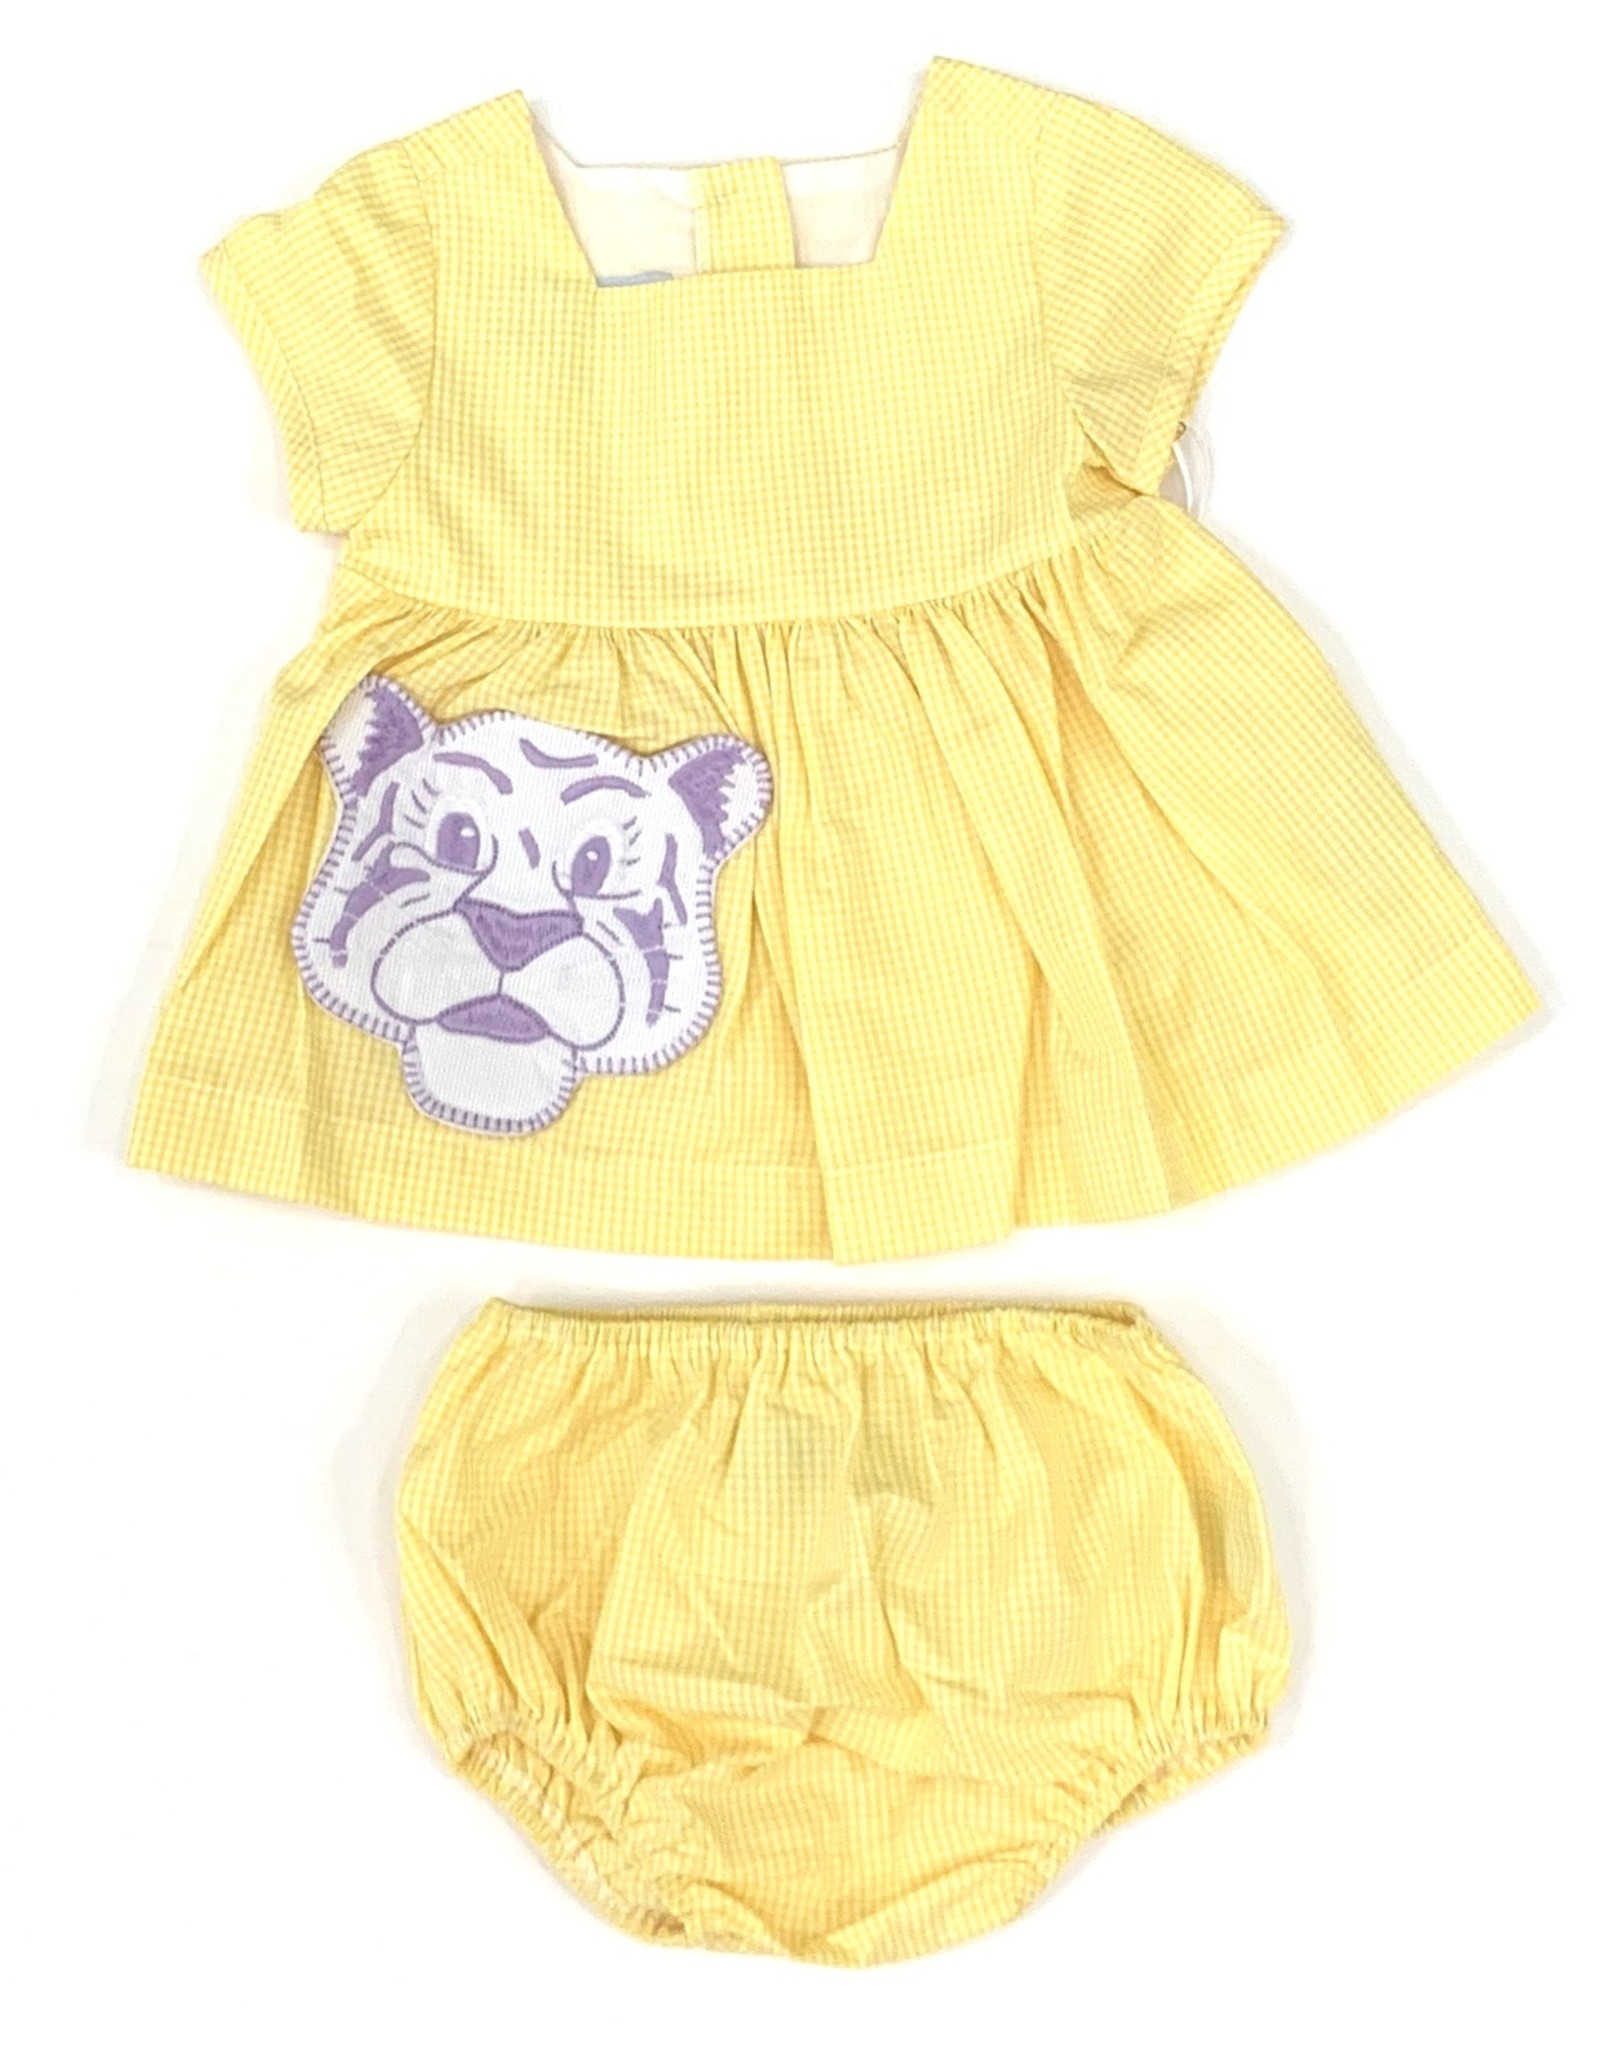 Pixie Lilly Pixie Lily Tiger Top Bloomer Set